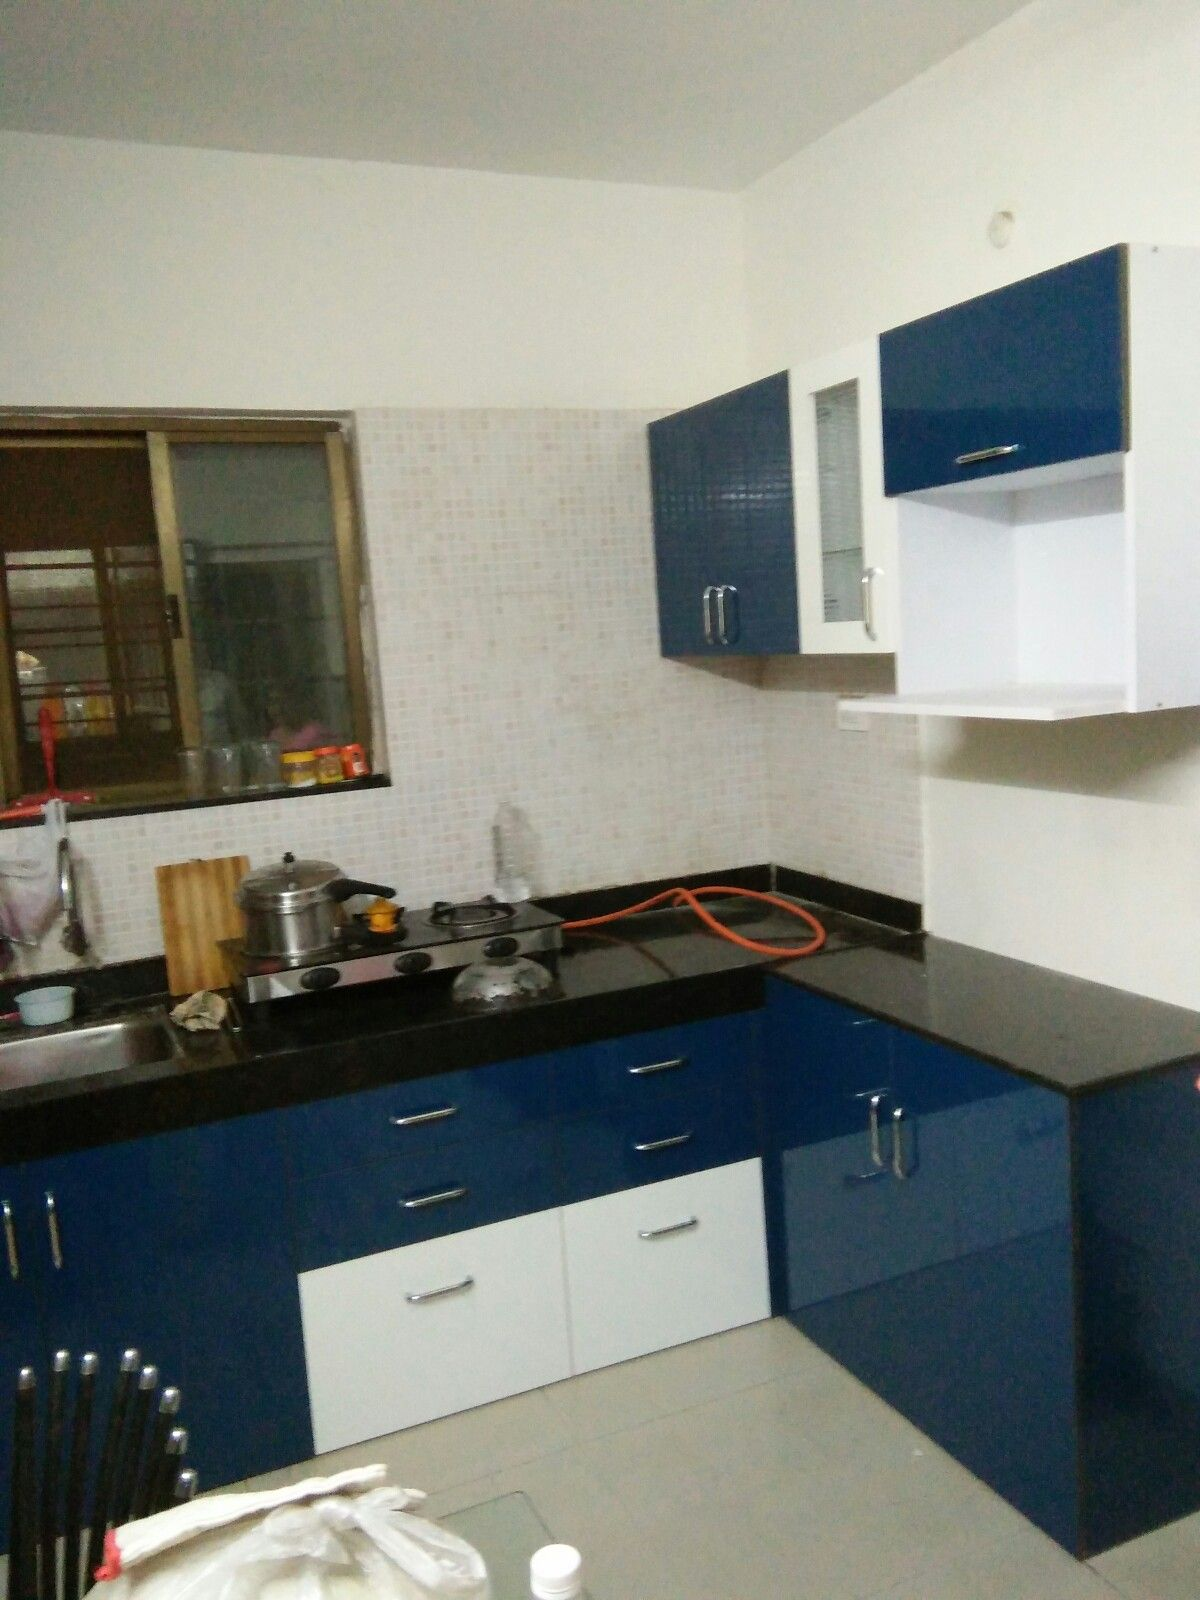 L Shaped Modular Kitchen Wall Unit Wall Cabinets Microwave Cabinet Swara S Kitchen Interior Kitchen Room Design Kitchen Modular Modular Kitchen Cabinets